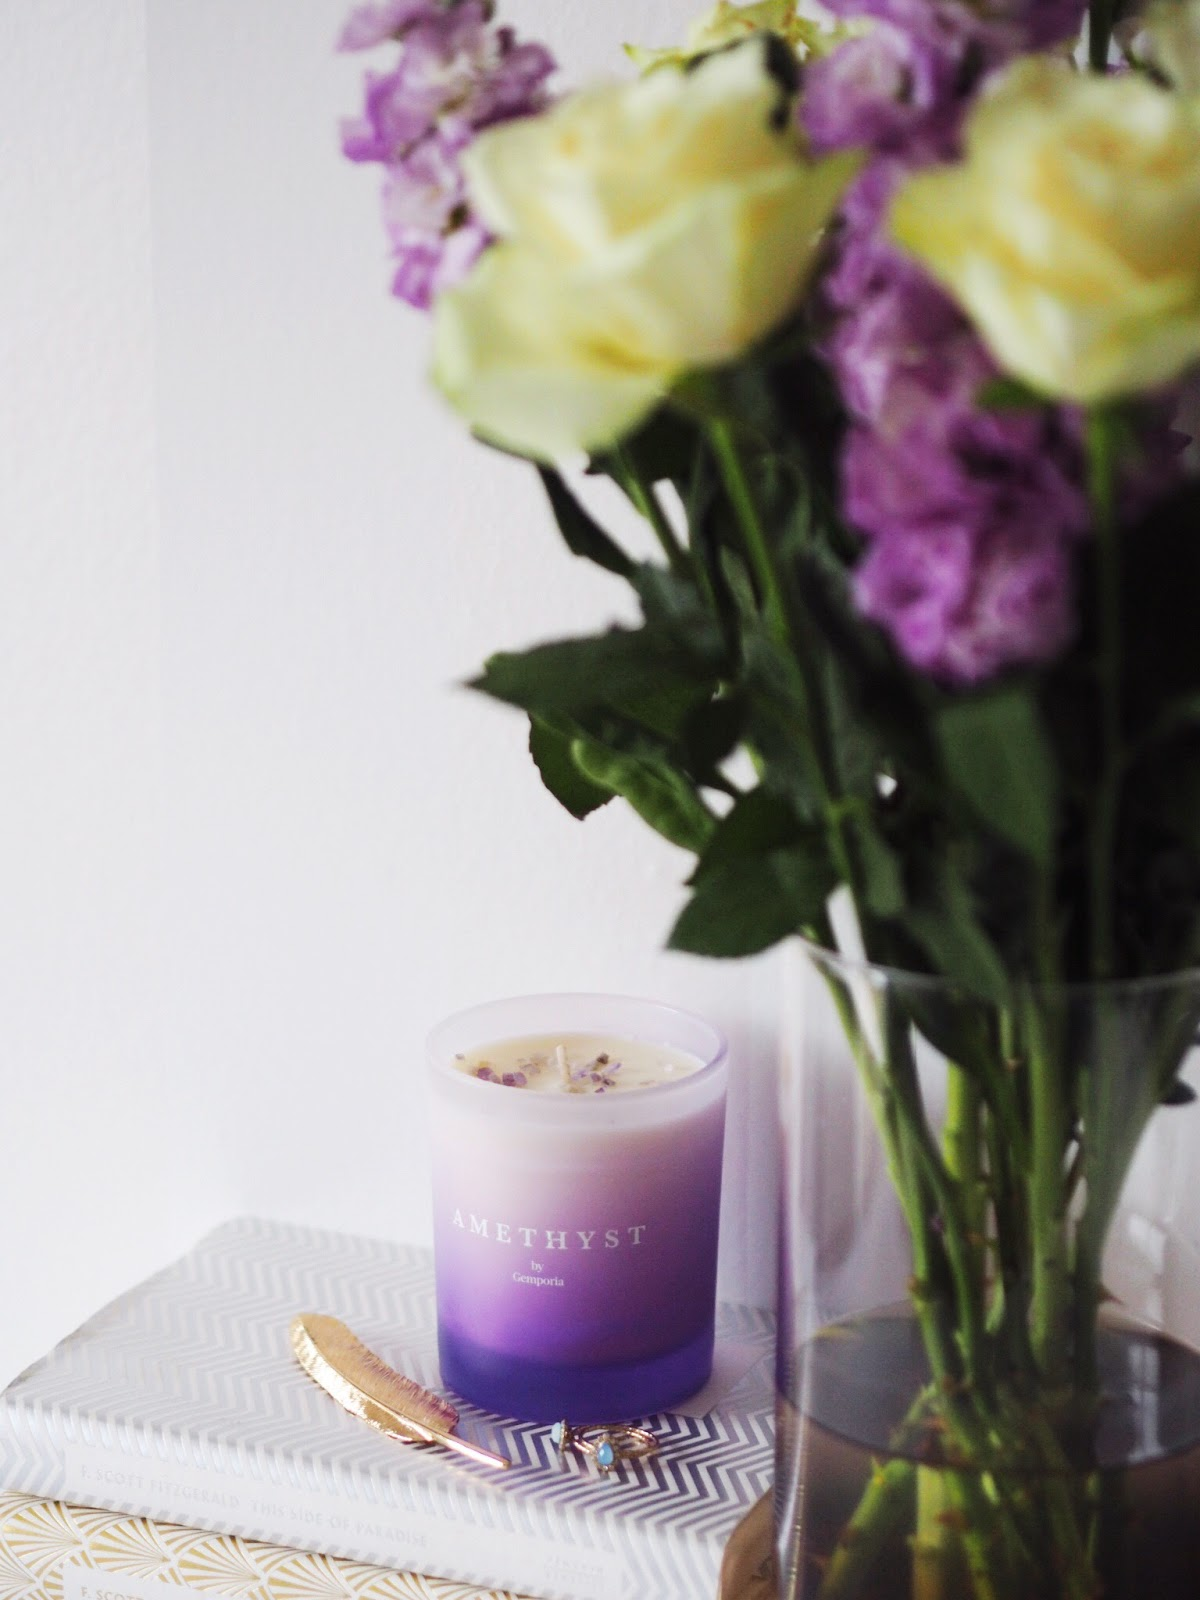 Gemporia Candle and Roses with Stocks Five Positive Things